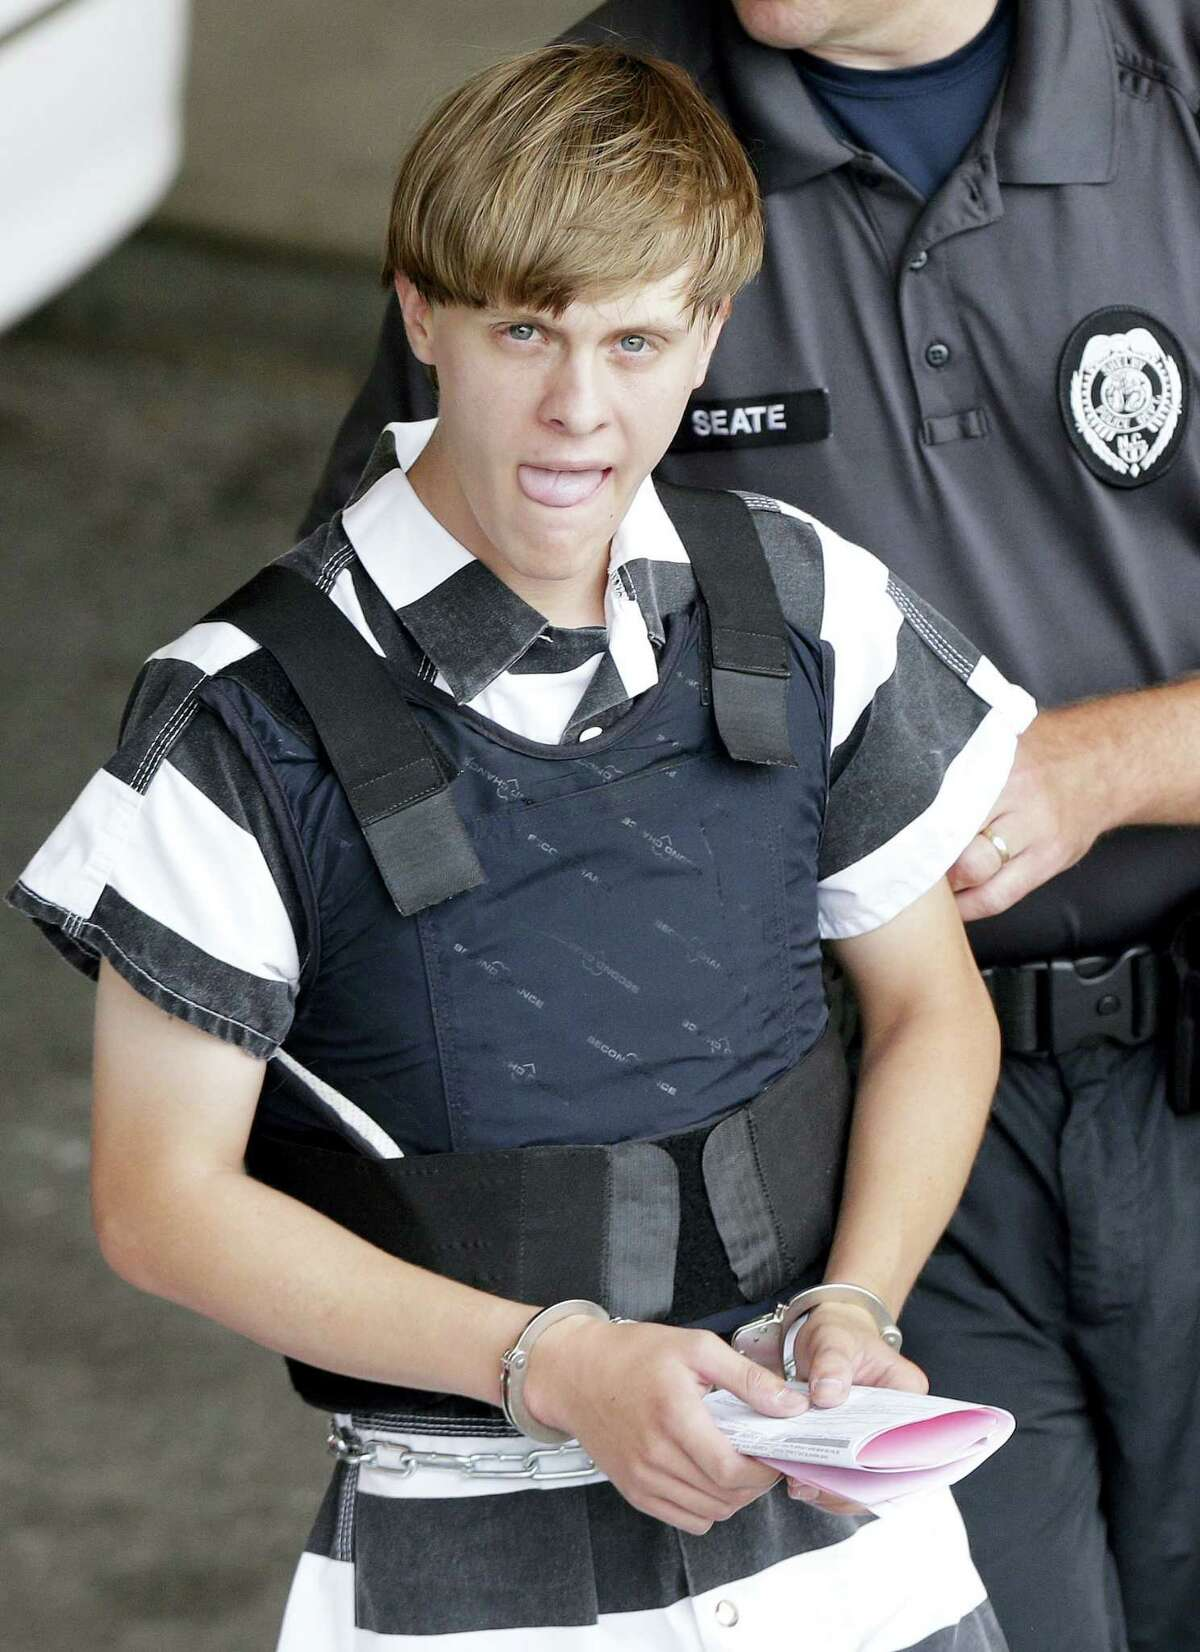 Dylann Roof is escorted from the Cleveland County Courthouse in Shelby, N.C., Thursday, June 18, 2015.